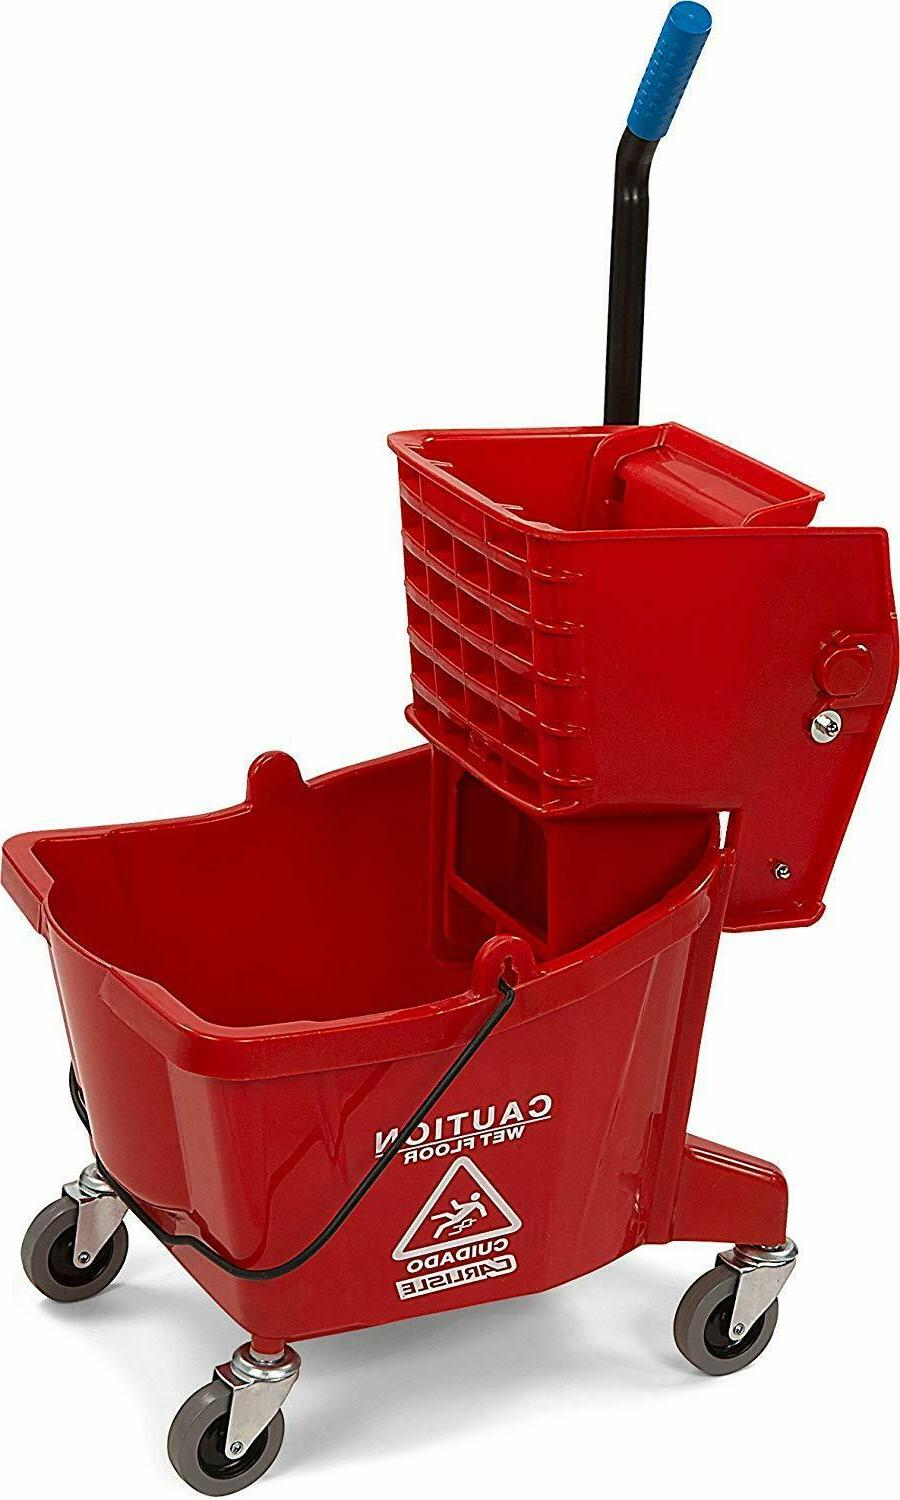 3690805 commercial mop bucket with side press